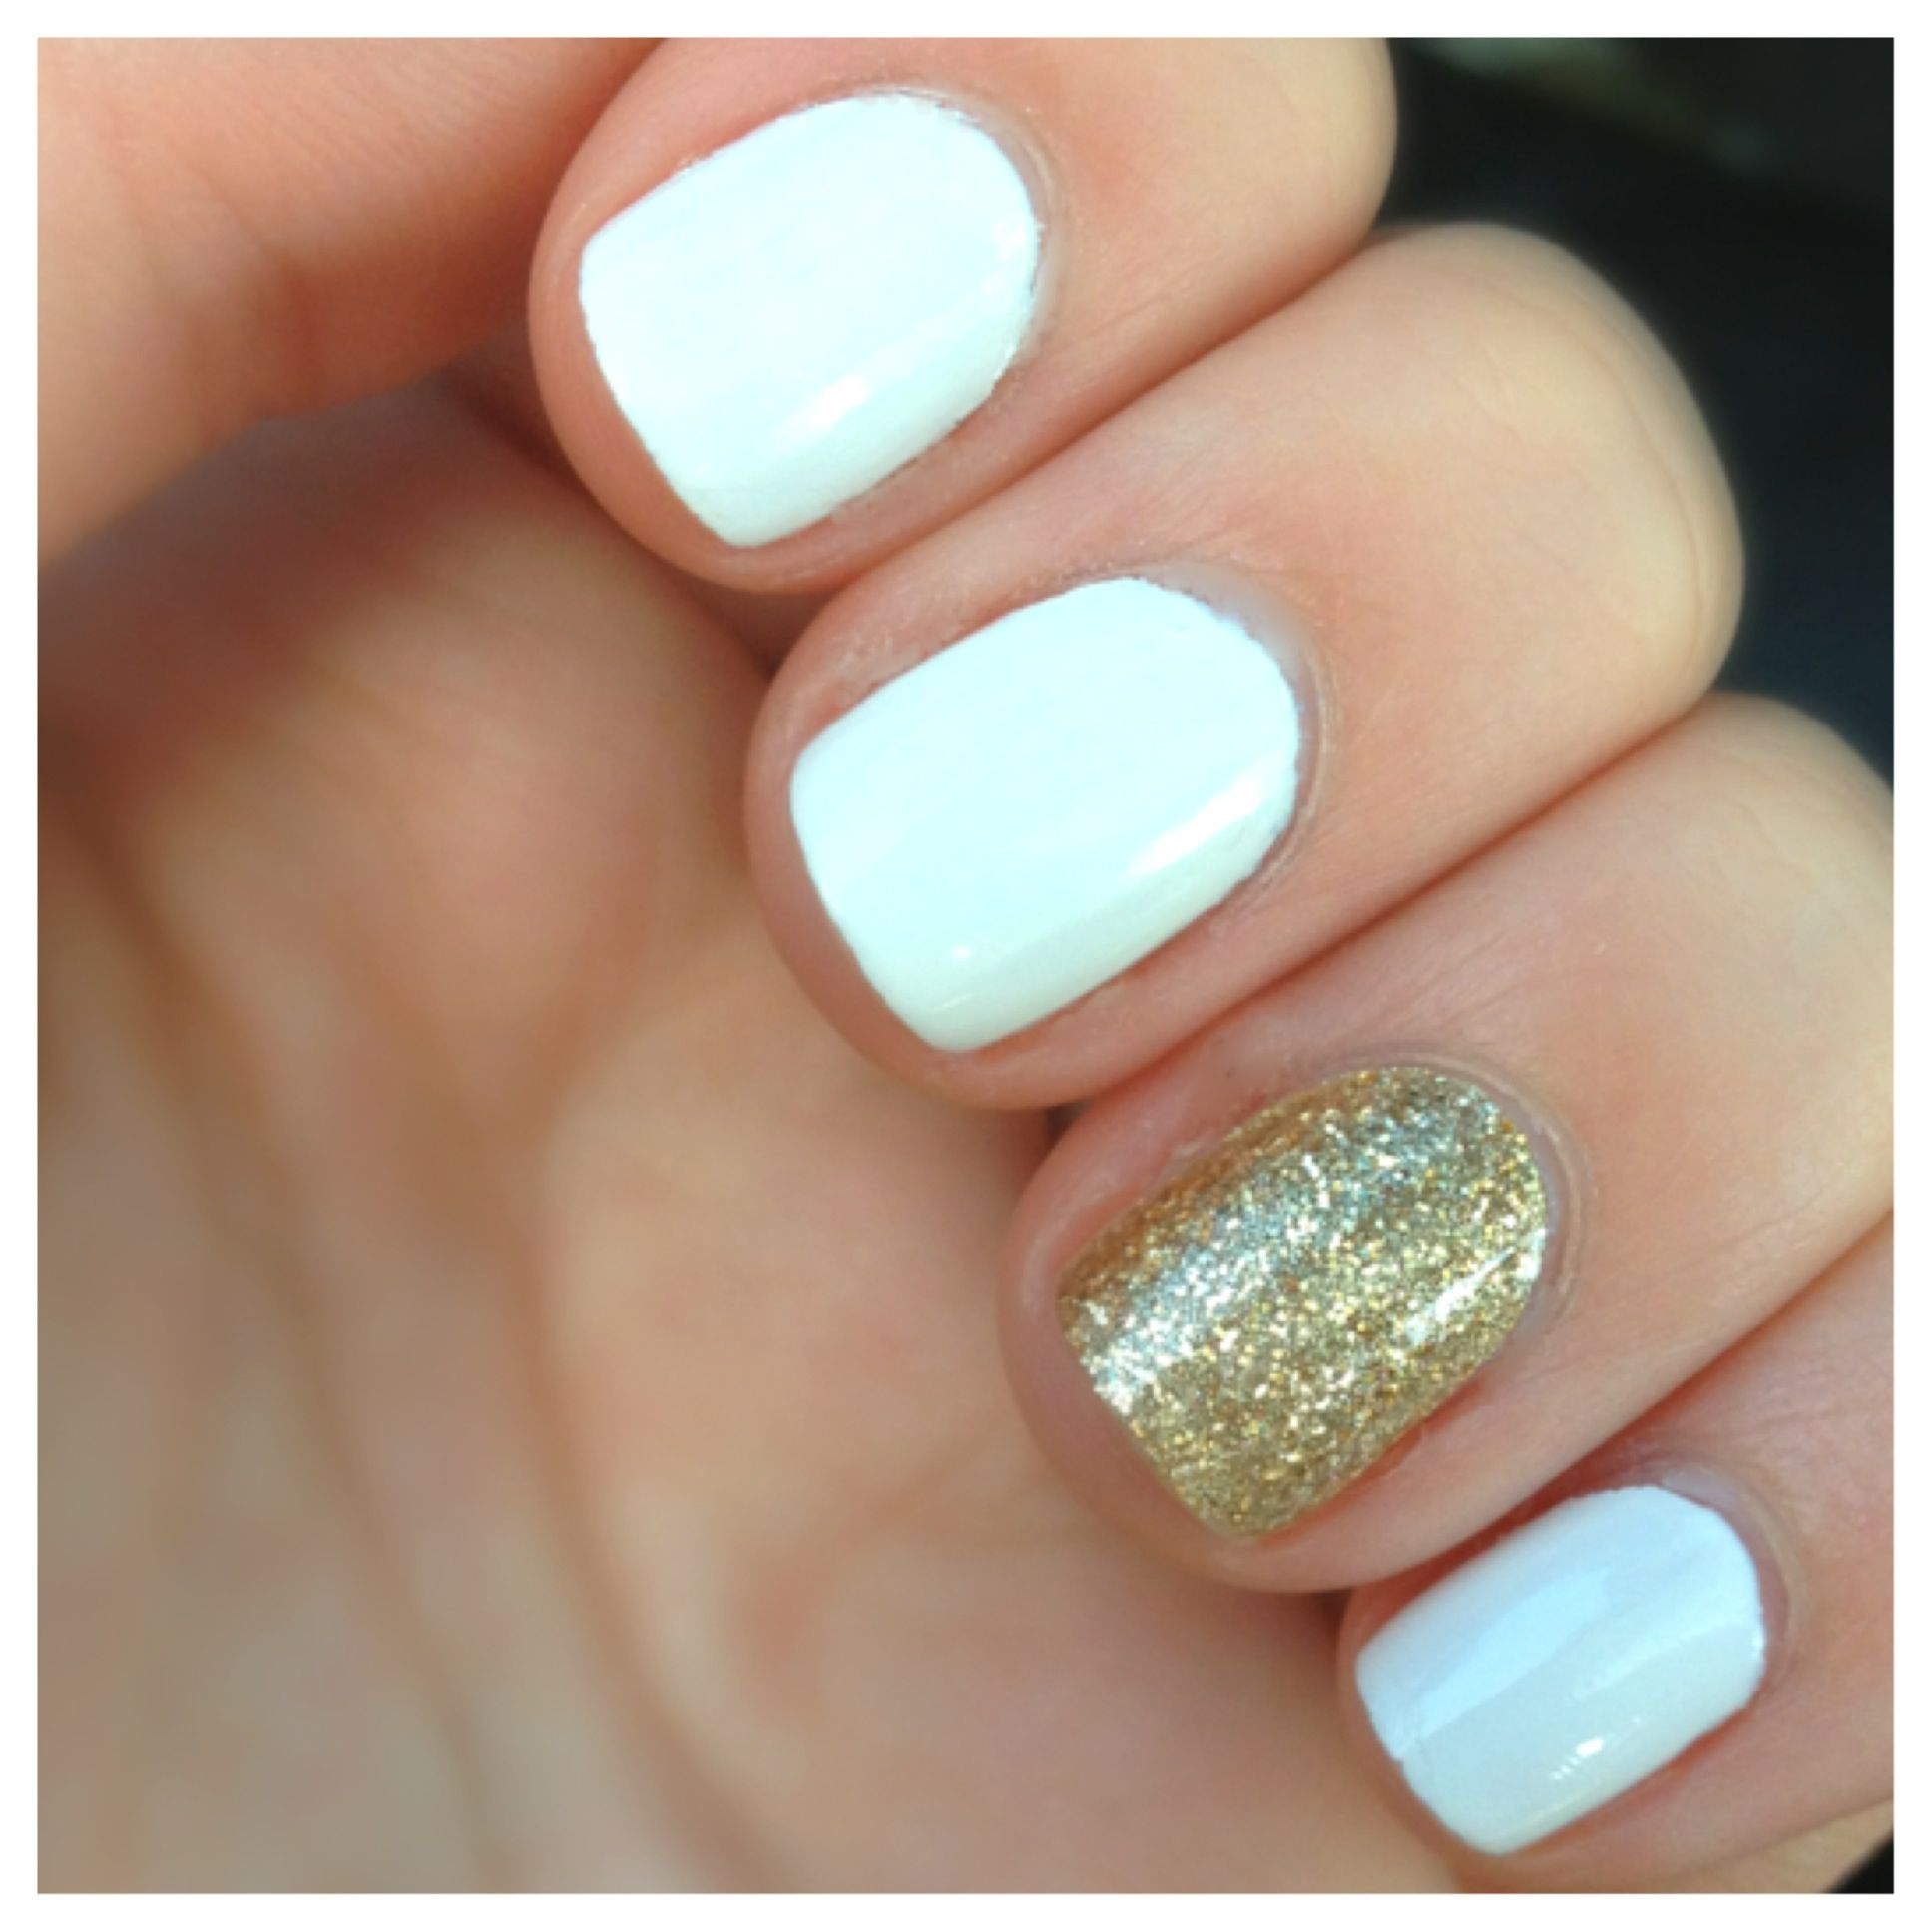 Pin By Nicole On Nails Gold Nails Blue Glitter Nails White Nails